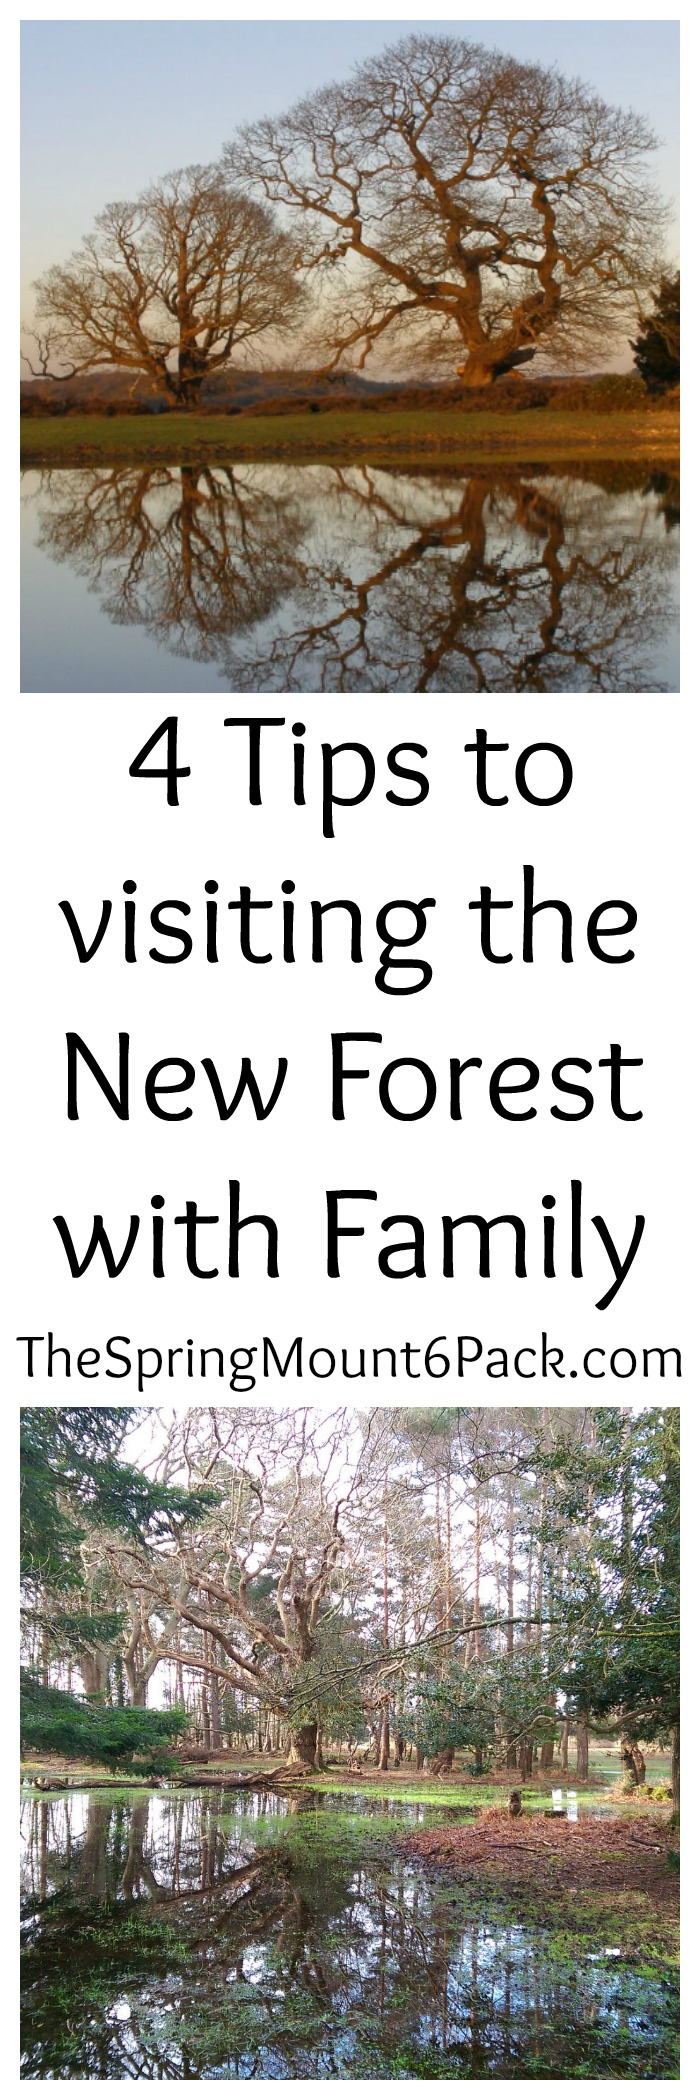 4 Tips to visiting the New Forest with Family. New Forest is located at Southern England and is a popular tourist destination.